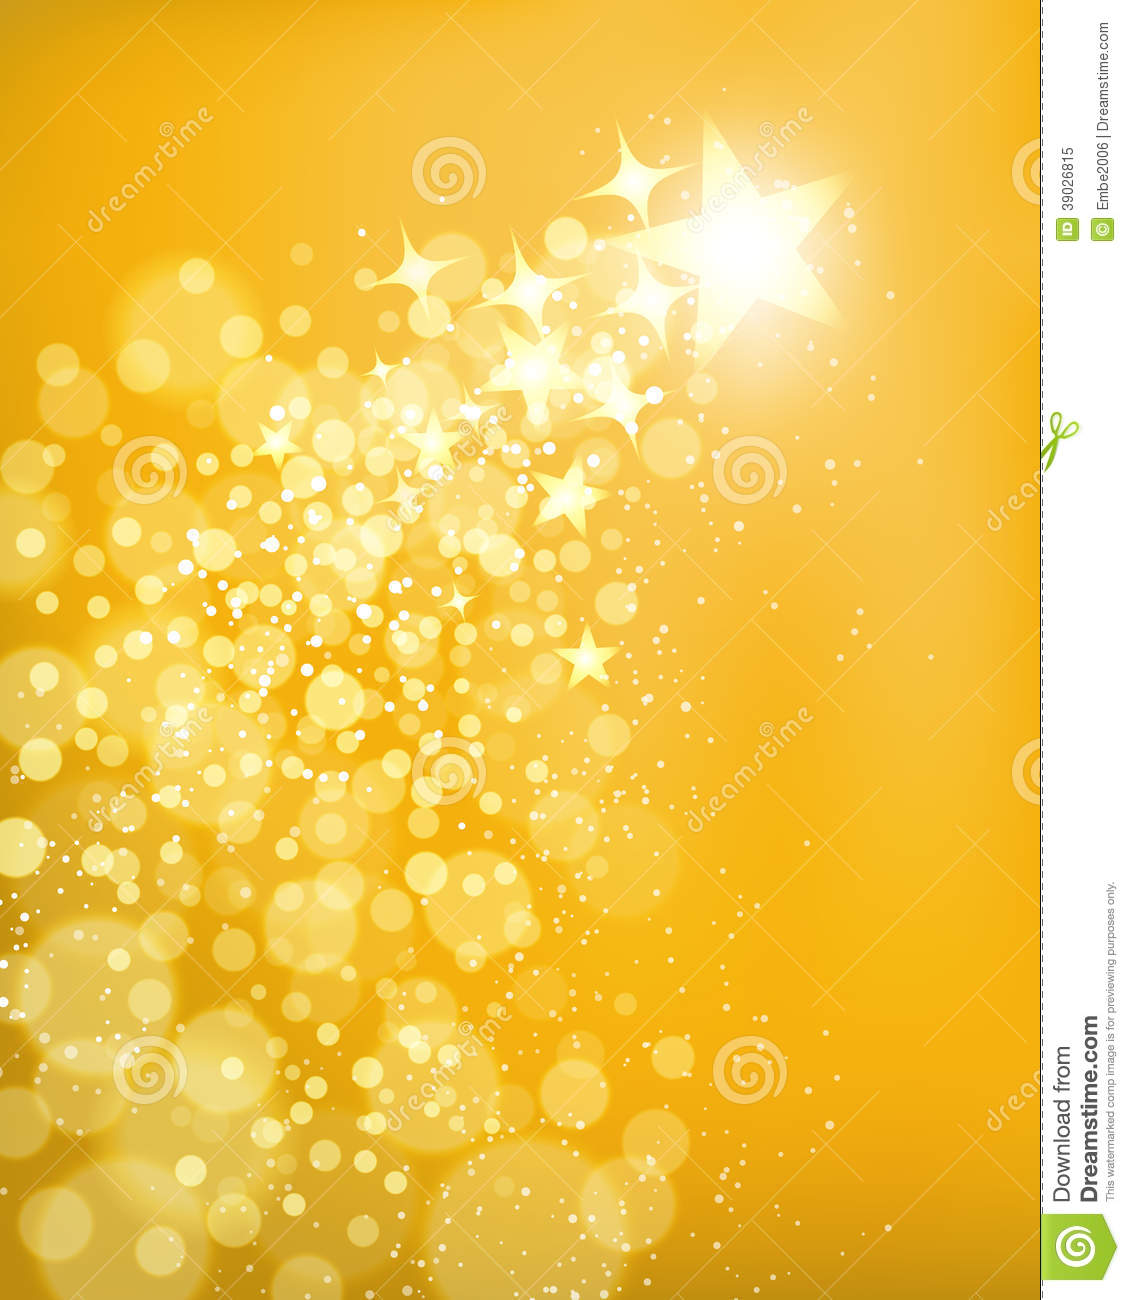 Golden Star Background Stock Vector - Image: 39026815